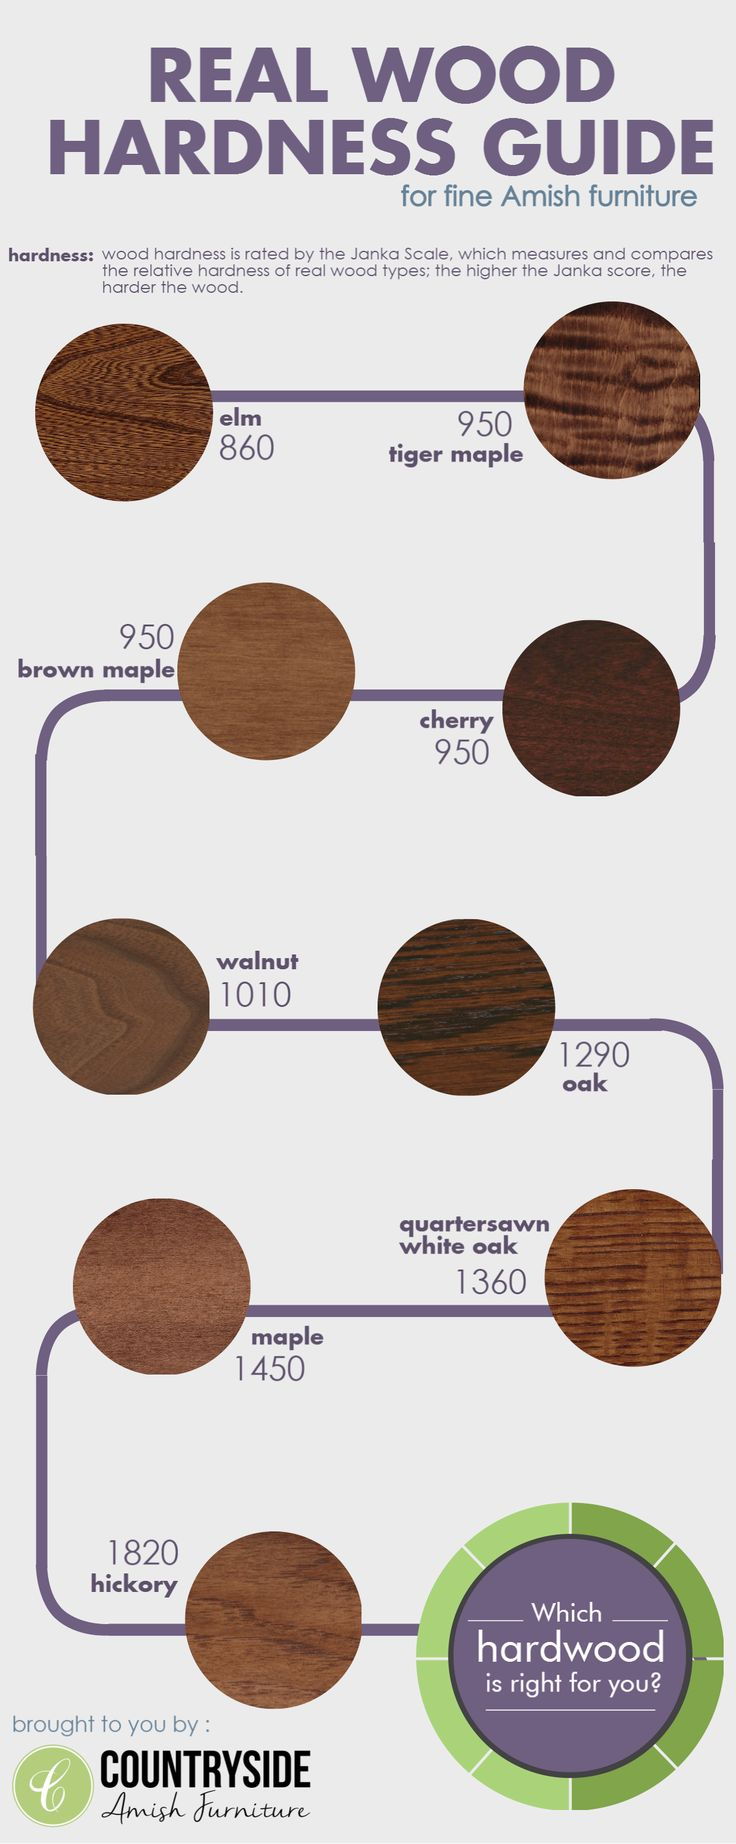 An infographic showing the relative hardness of domestic hardwoods used in creating fine, handcrafted Amish furniture.